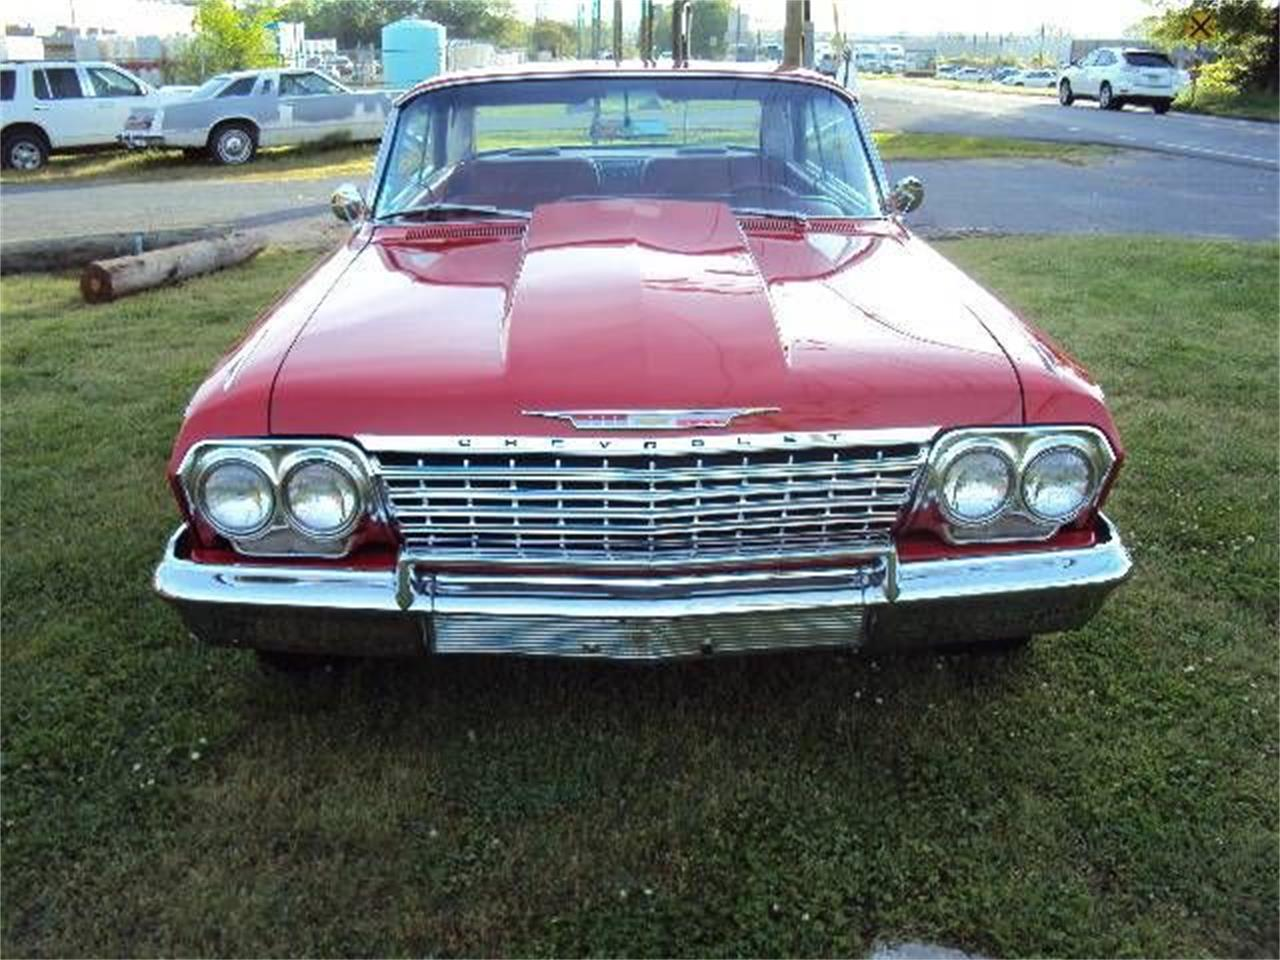 Large Picture of 1962 Chevrolet Impala located in Cadillac Michigan - $35,995.00 Offered by Classic Car Deals - PWJQ